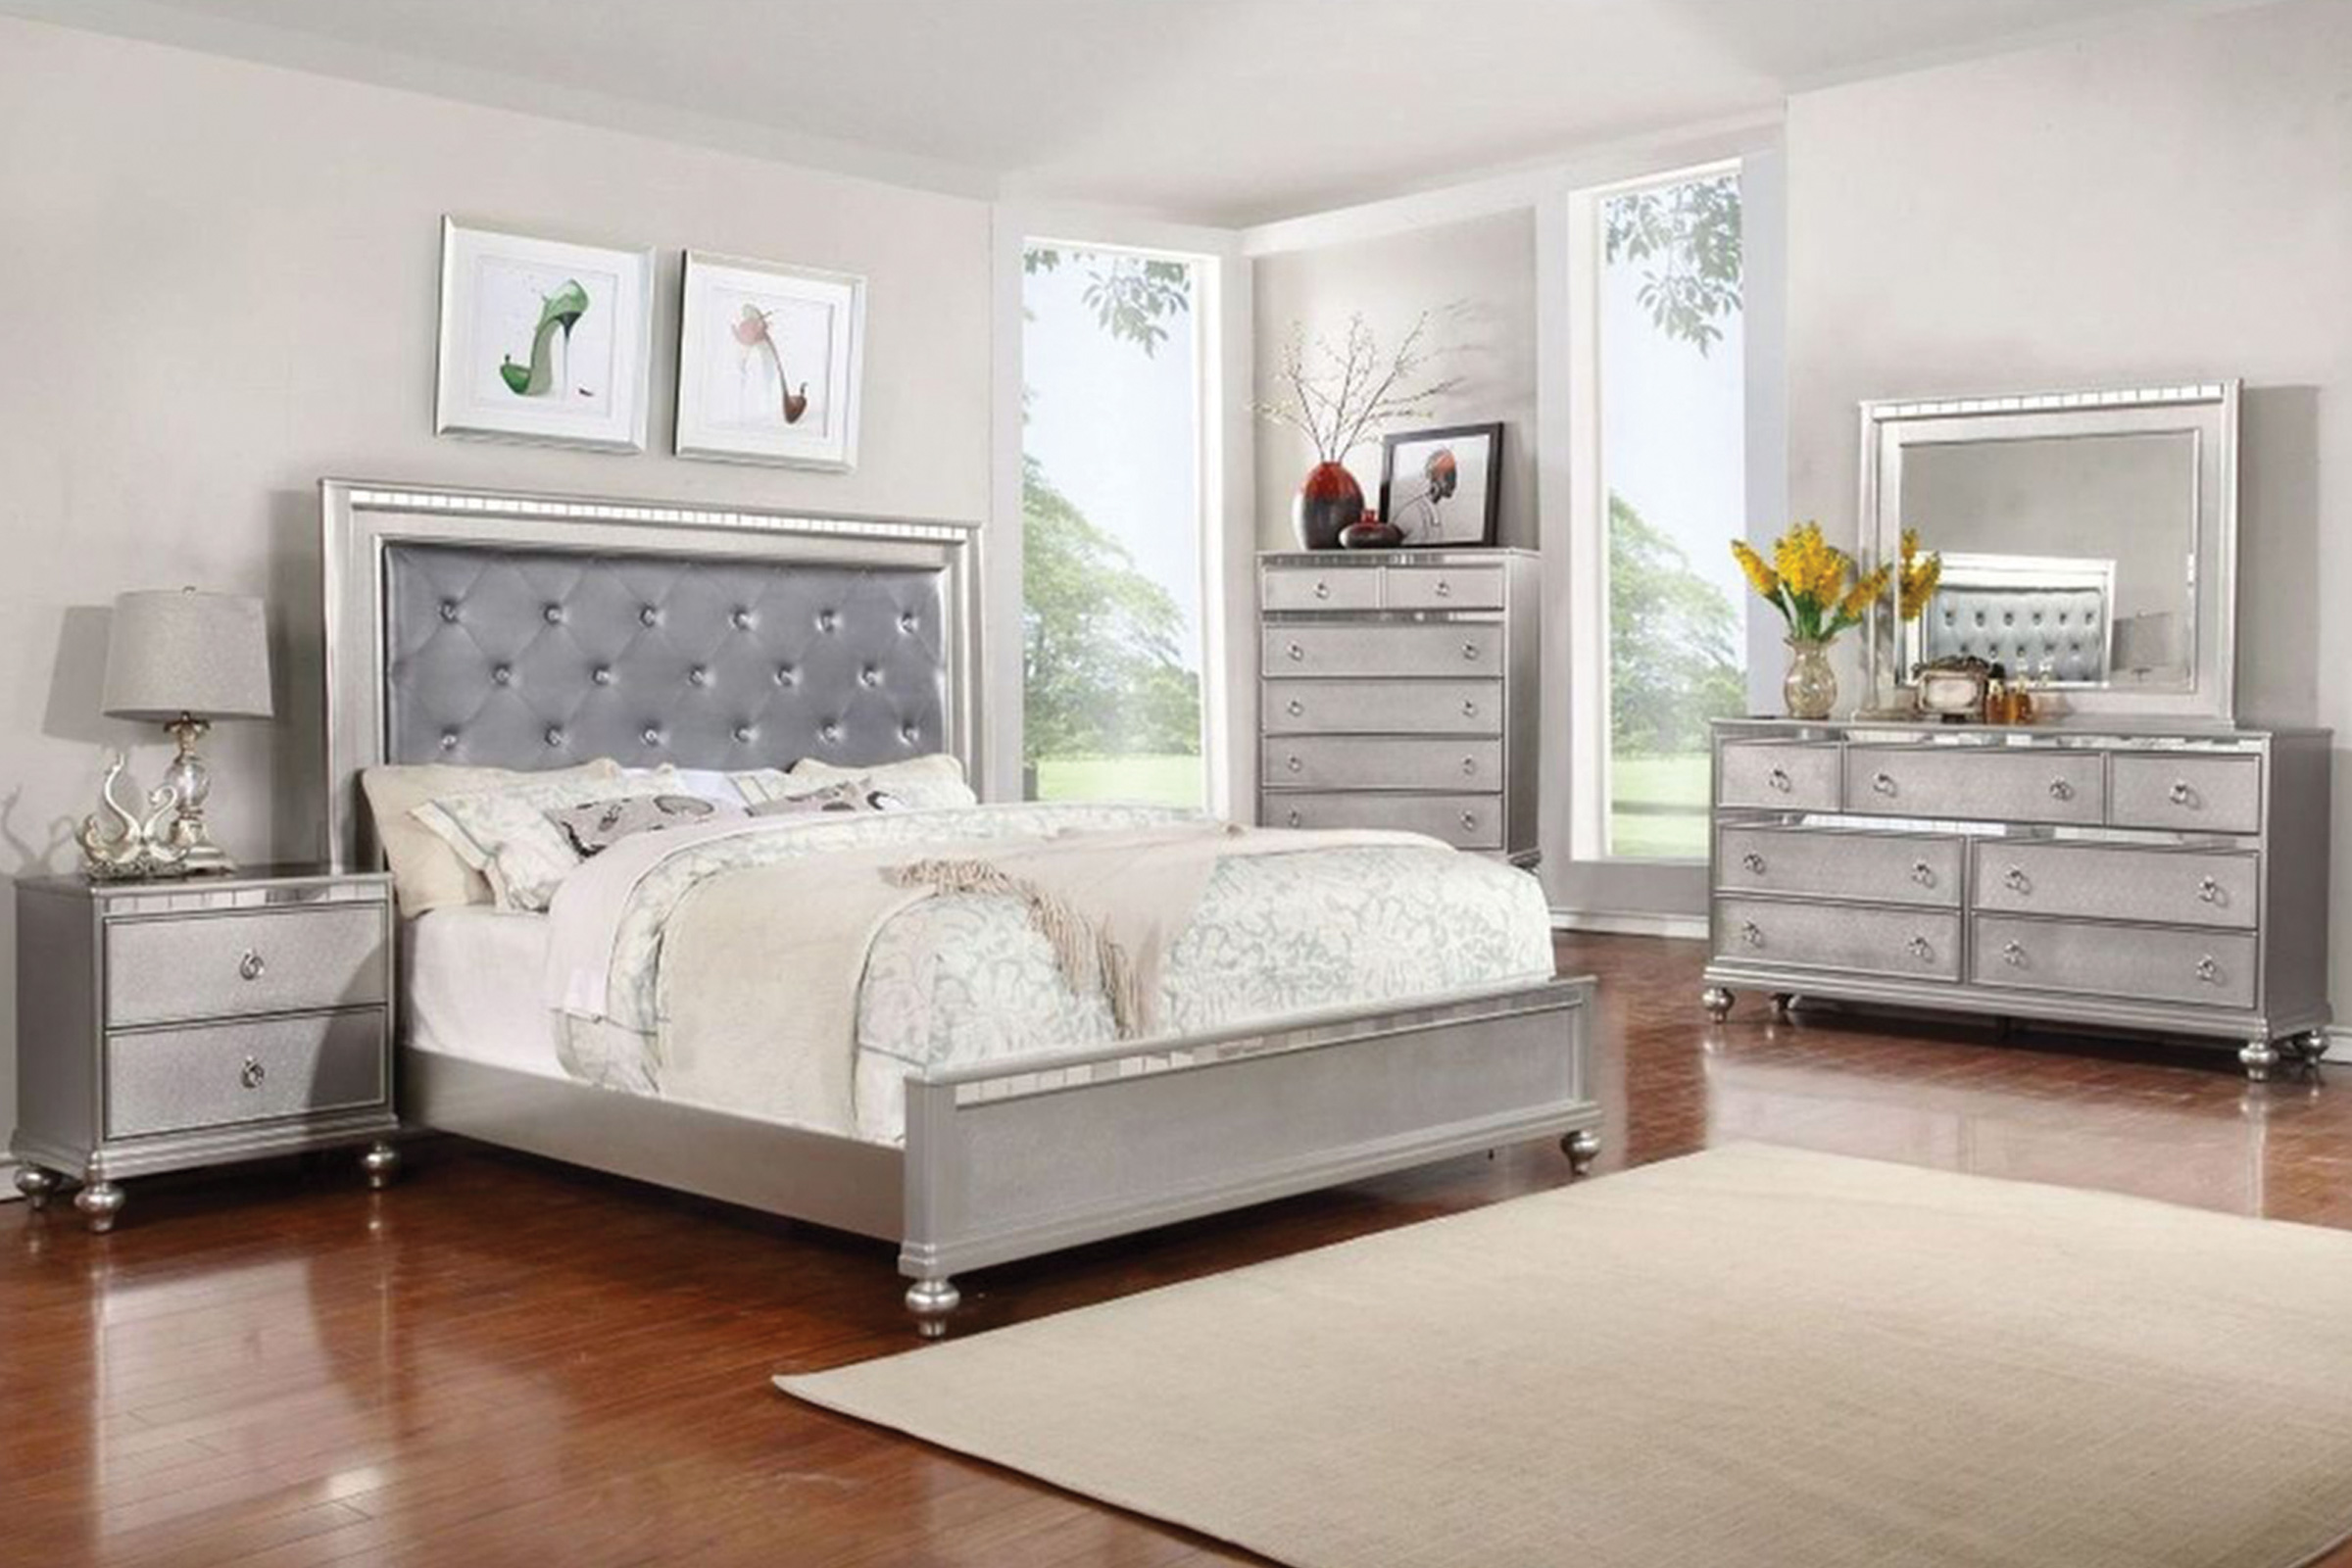 Bedroom Furniture Collections